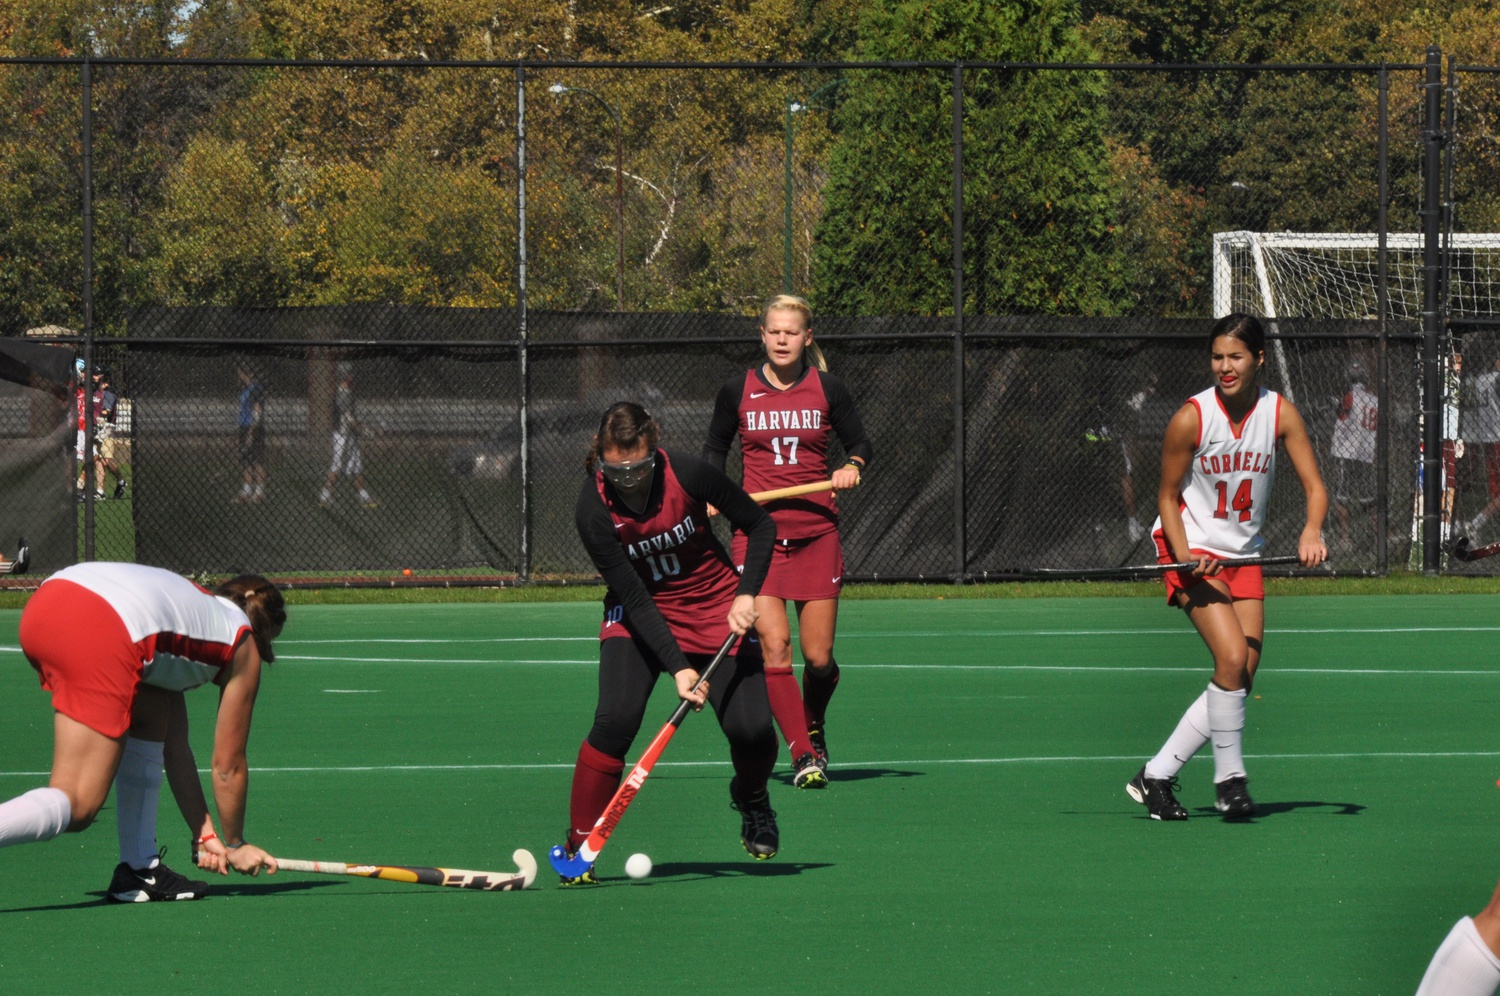 Sophomore Elizabeth Jacobson scored both of the Harvard field hockey team's goals to end the squad's season on a high note.